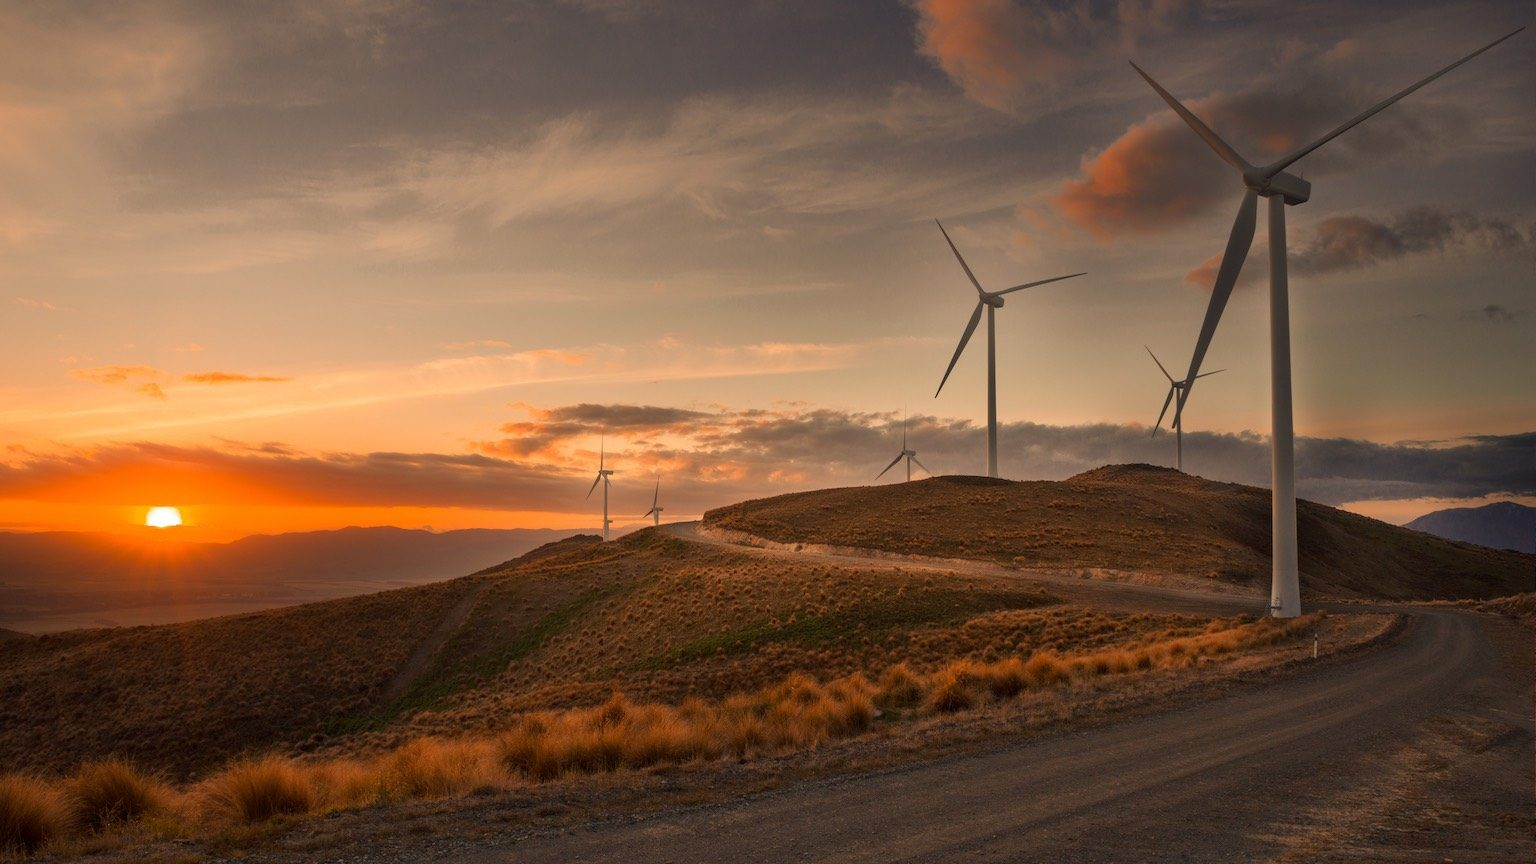 Sunset at White Hill Wind Farm at Otago, South Island, New Zealand.